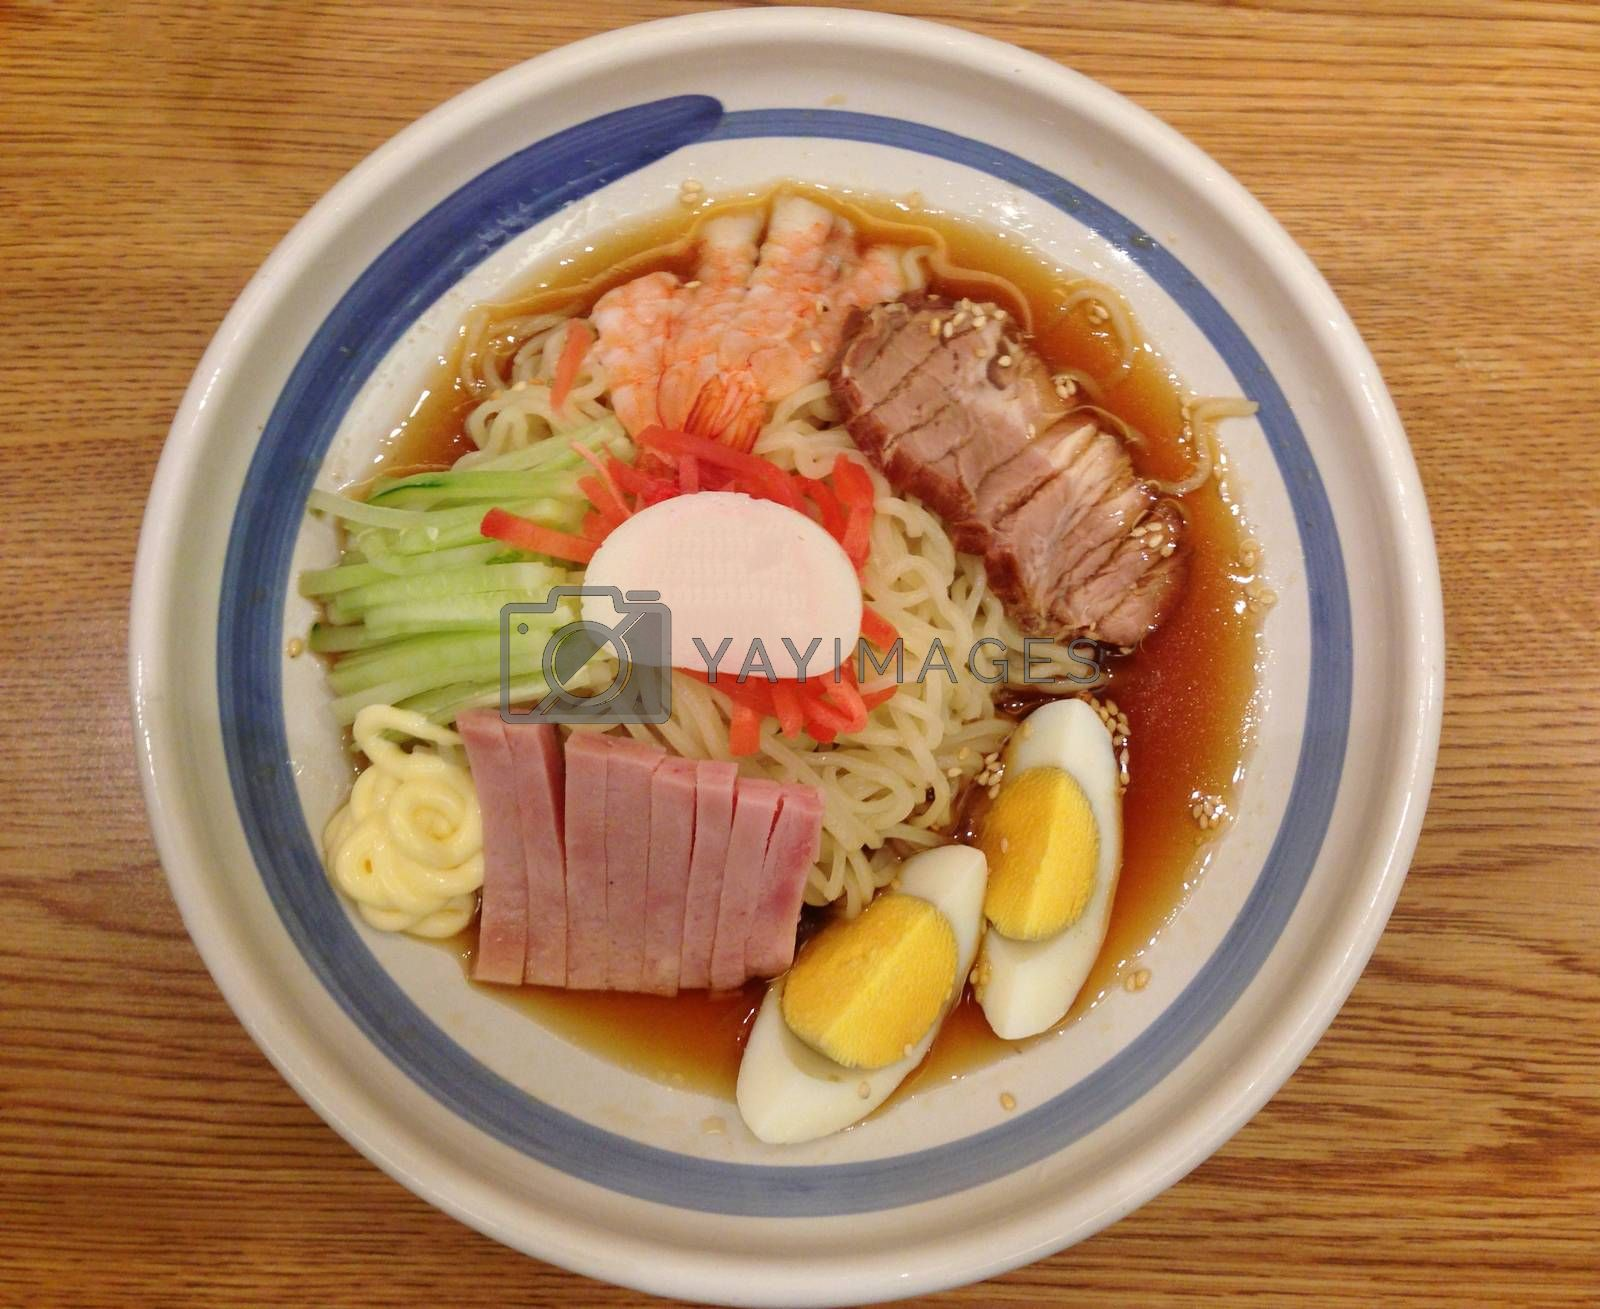 Royalty free image of remen,the cold noodle with shrmip ham egg and cucumber in lemon  by pandara